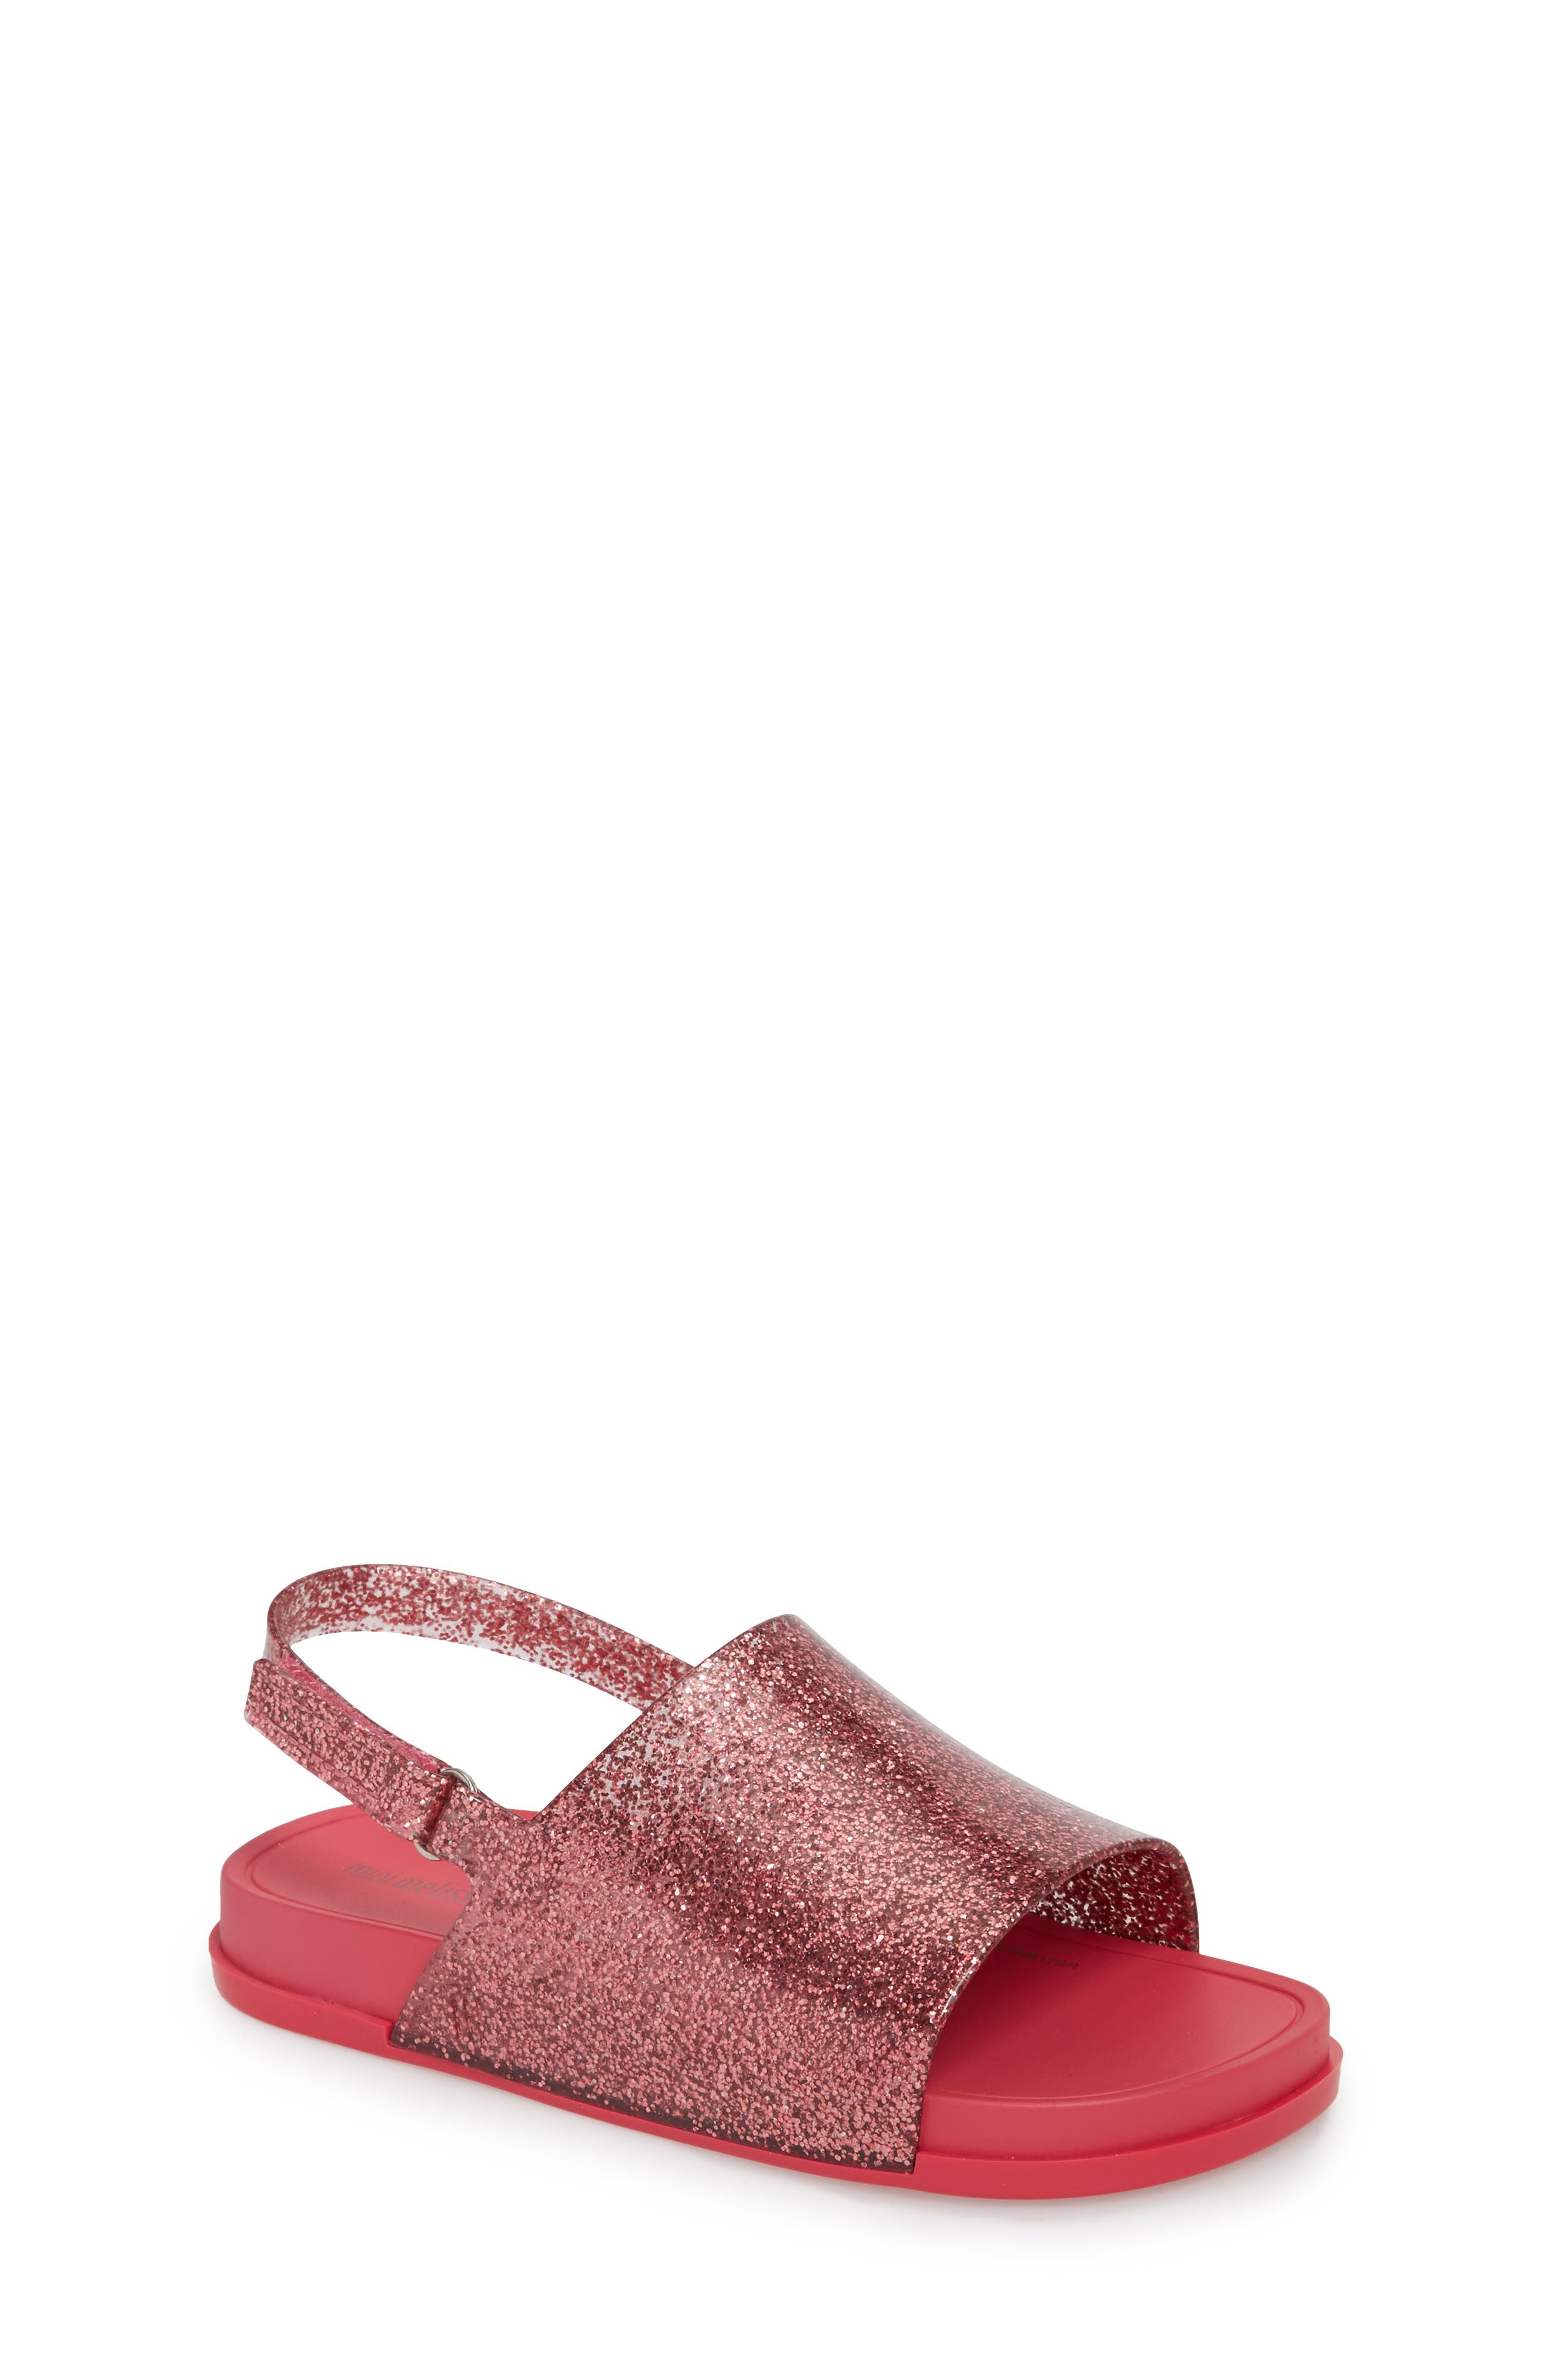 Mini Beach Sandal,                         Main,                         color, Pink Glitter